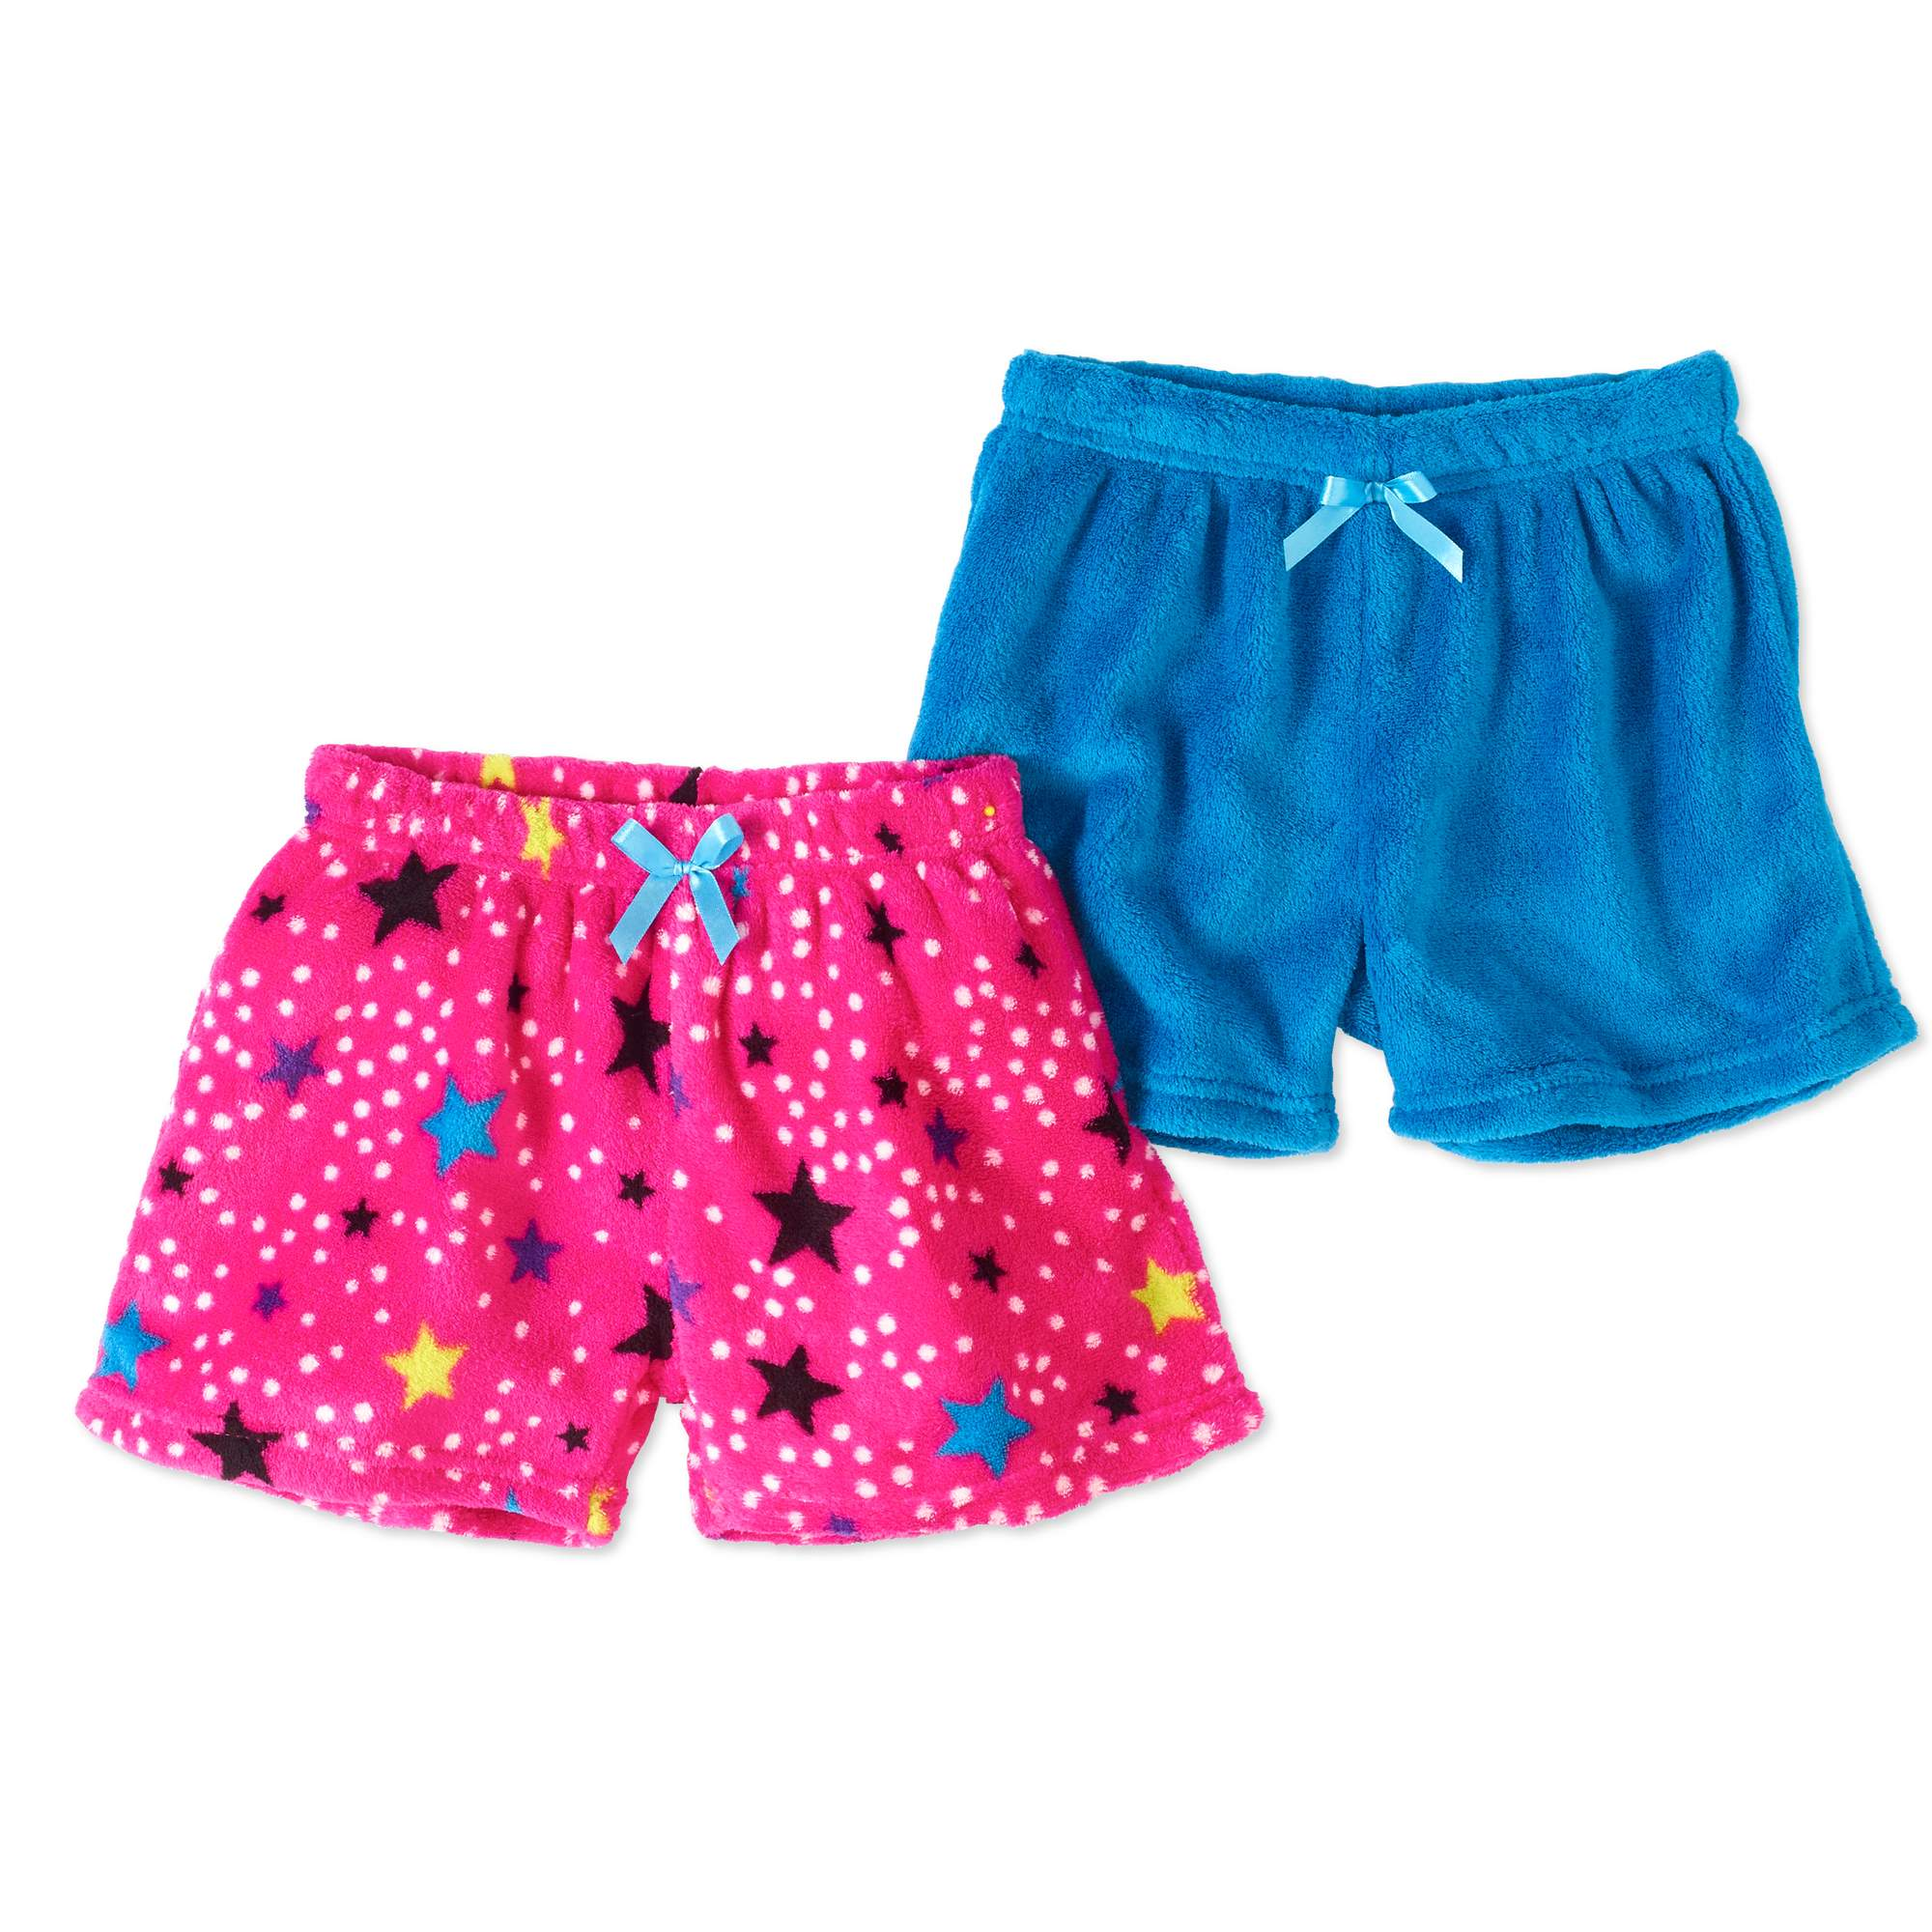 Chili Peppers Girls' 2-Pack Coral Fleece Shorts